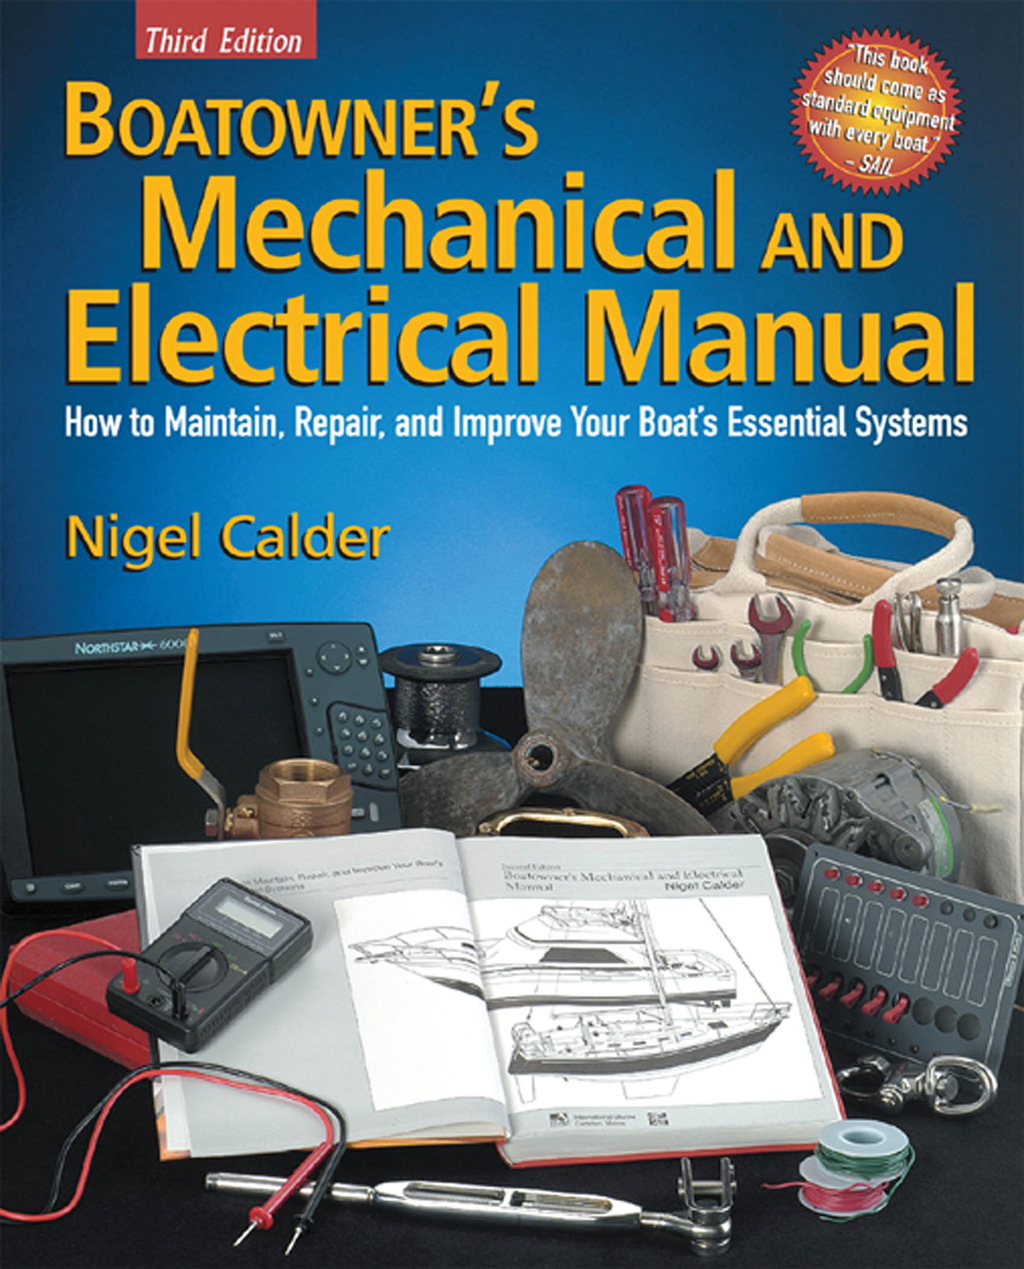 Boatowner's Mechanical and Electrical Manual : How to Maintain, Repair, and Improve Your Boat's Esse